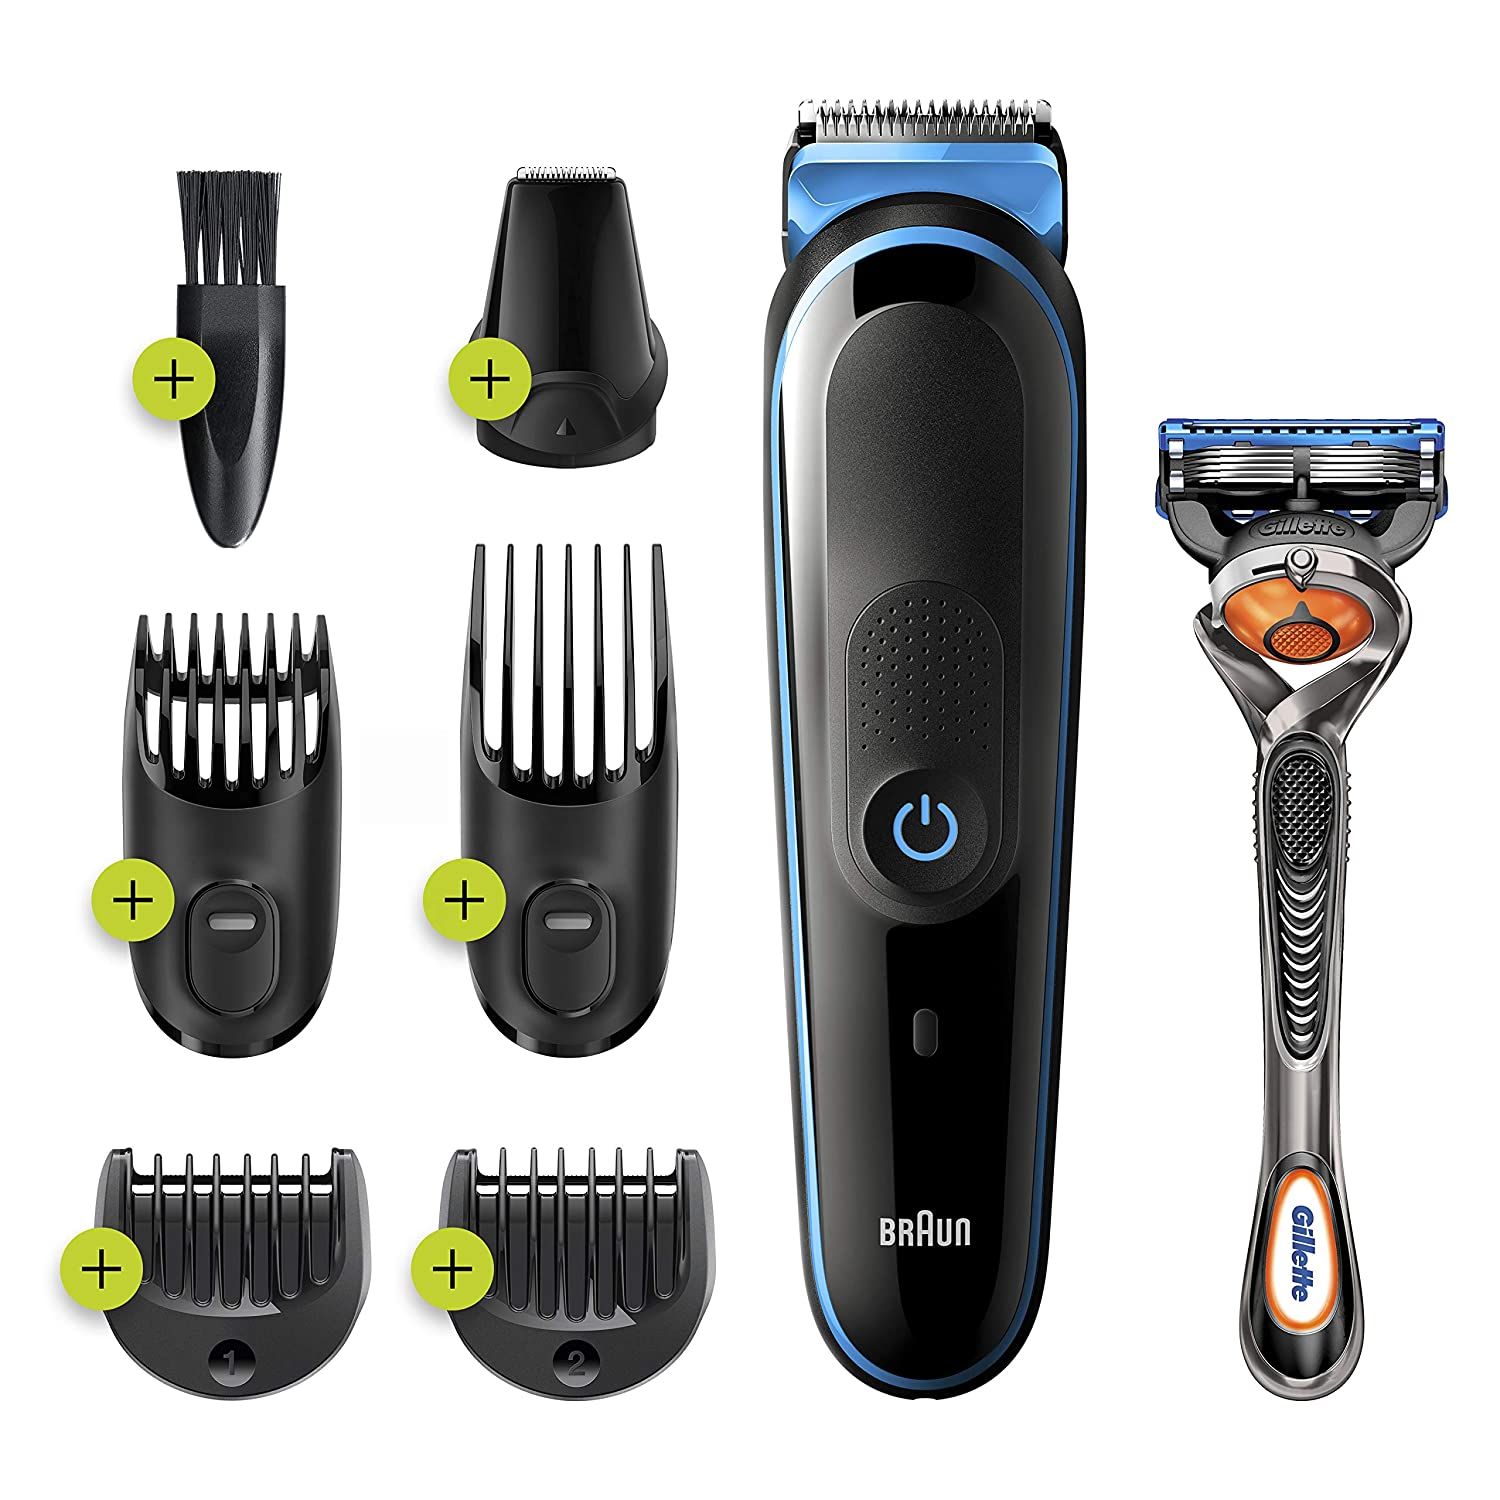 Braun 7-in-1 Trimmer MGK3245 Beard Trimmer for Men, Face Trimmer and Hair Clipper, Black/Blue